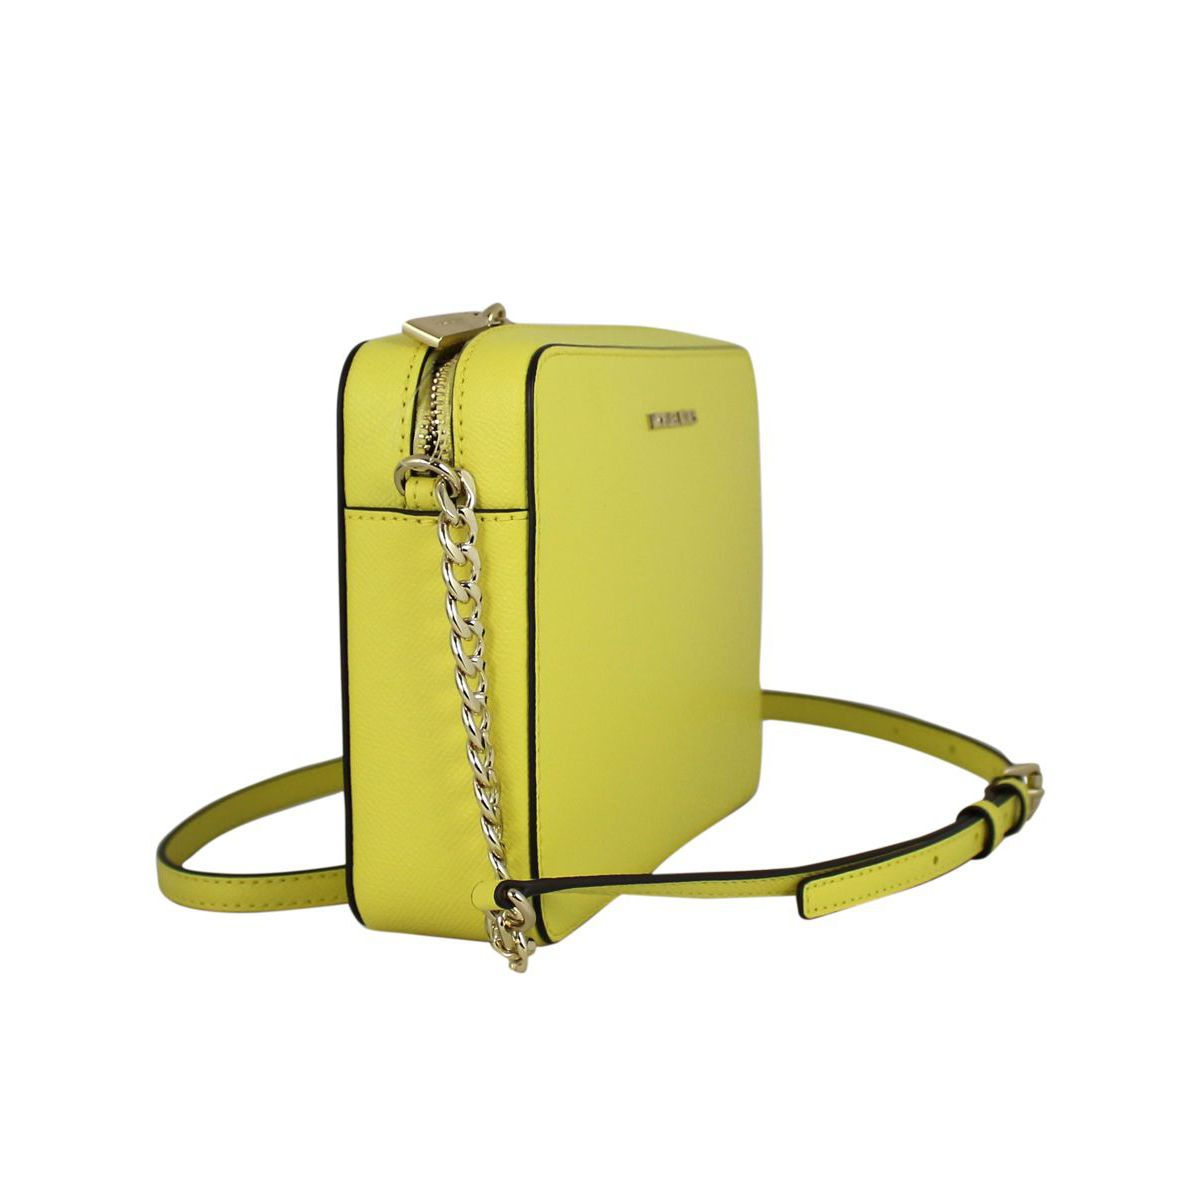 Shoulder bag in saffiano leather Yellow Michael Kors